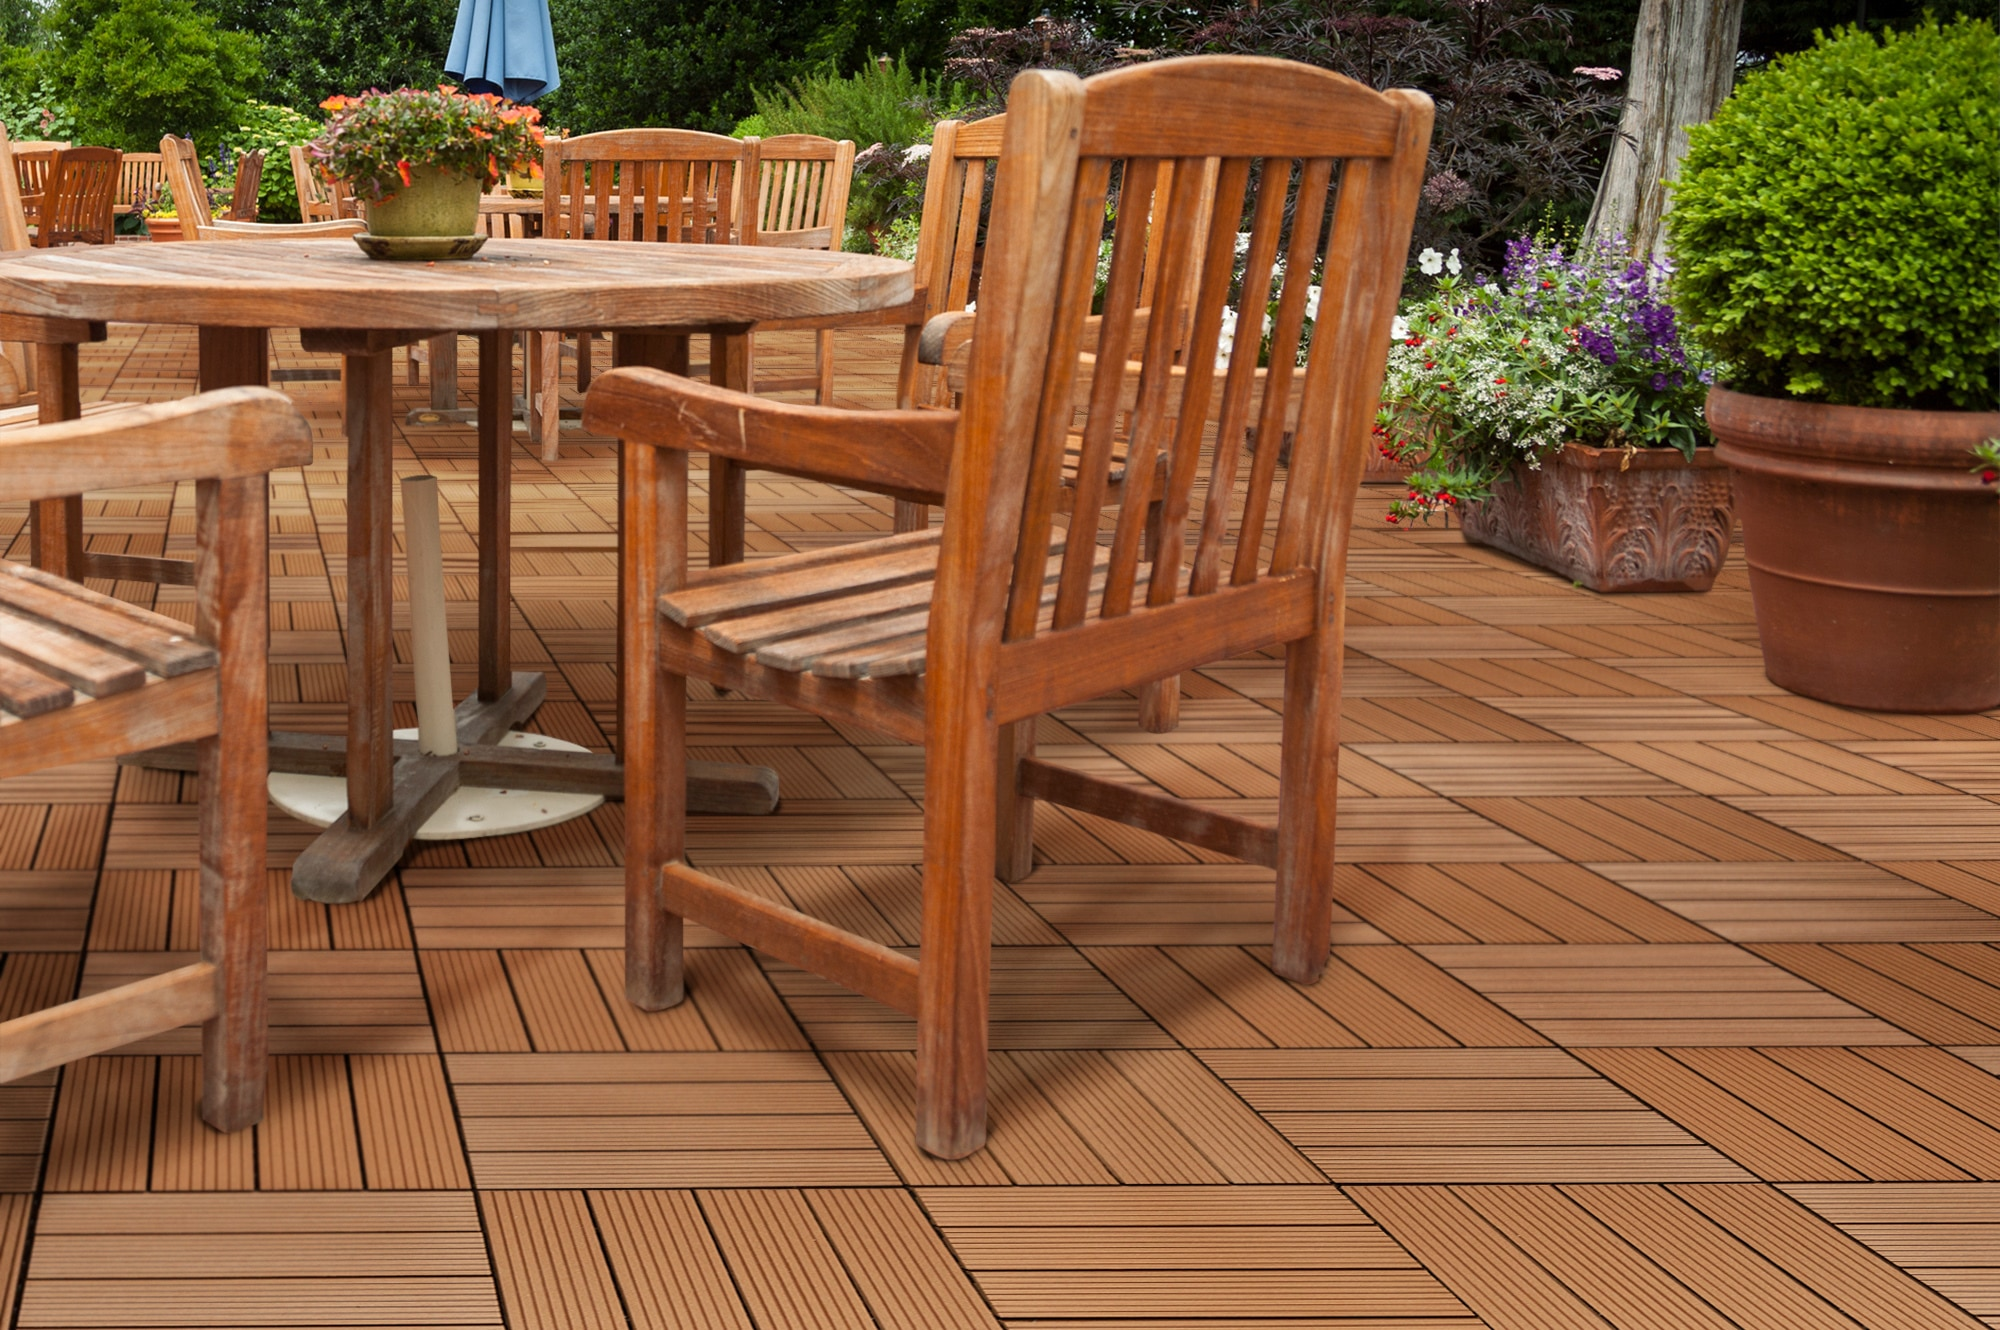 Best outdoor wood deck tiles and download floor 162outdoor for Hardwood outdoor decking